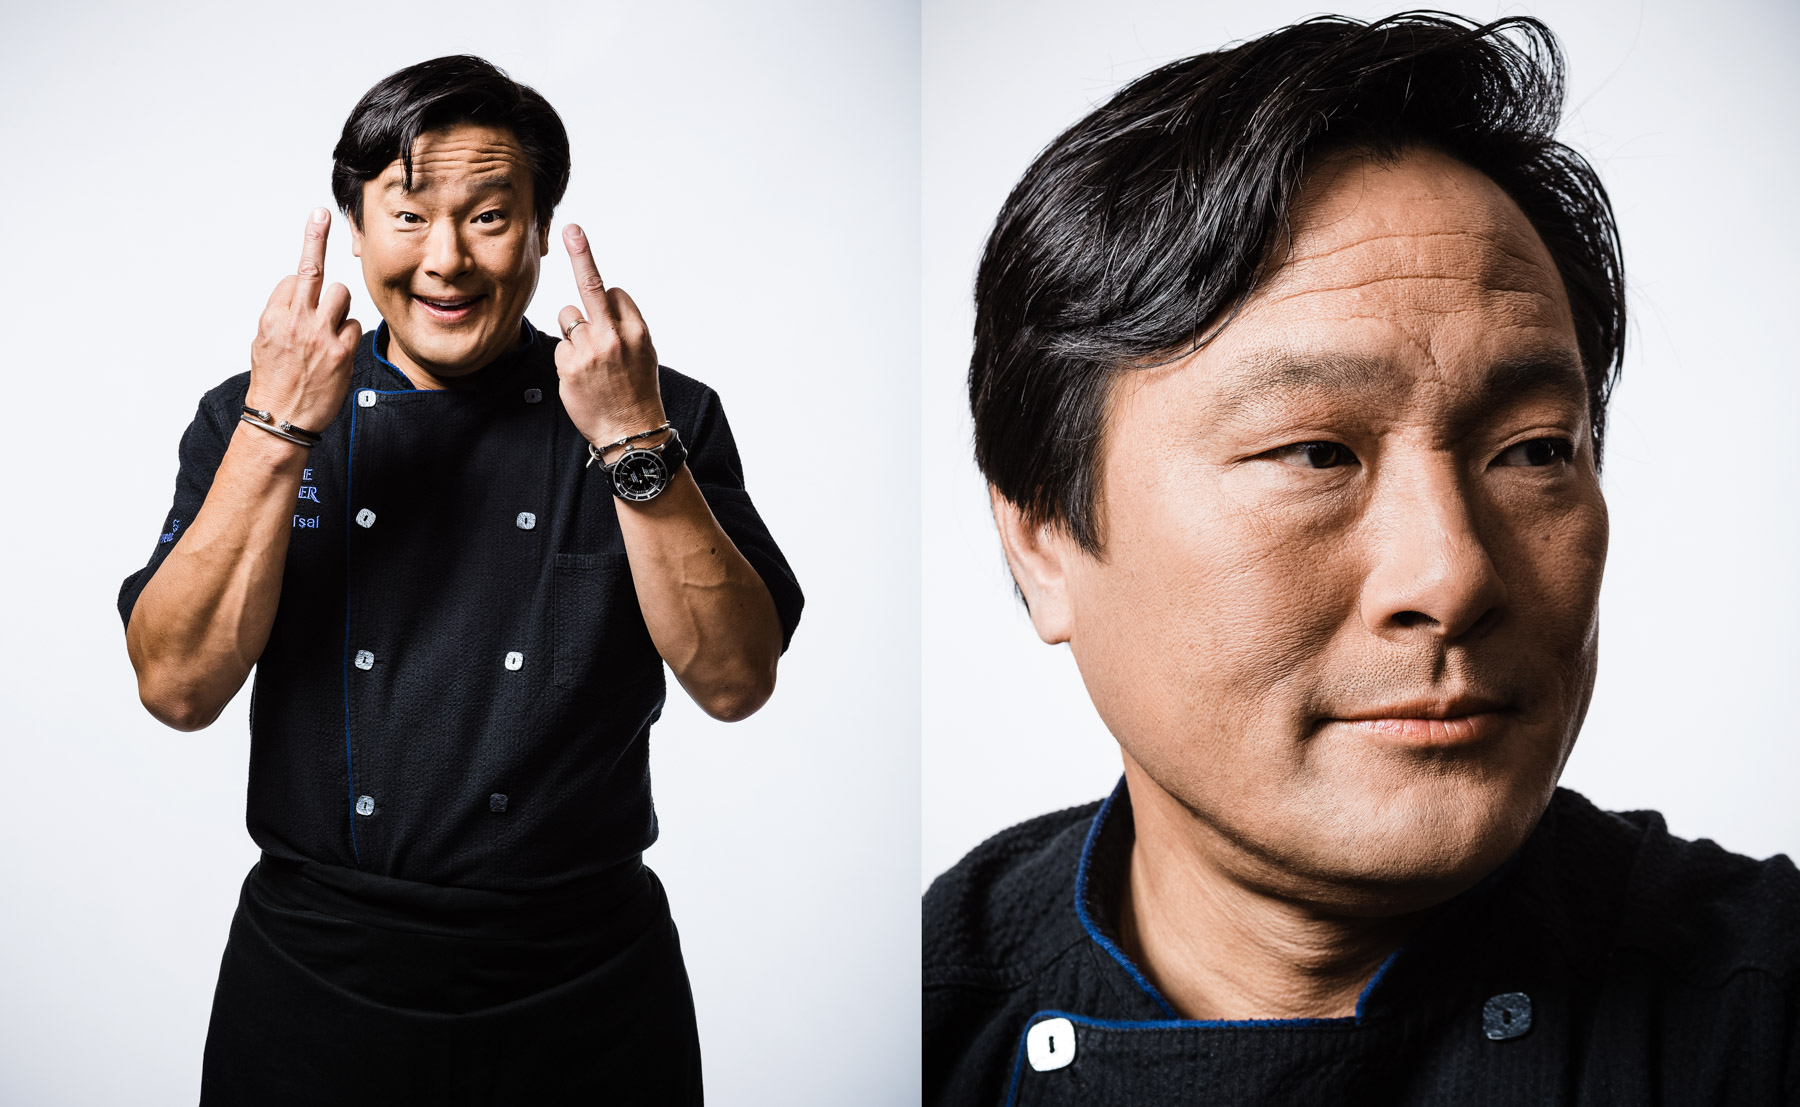 MING TSAI • CELBRITY CHEF • JASON GROW PHOTOGRAPHY